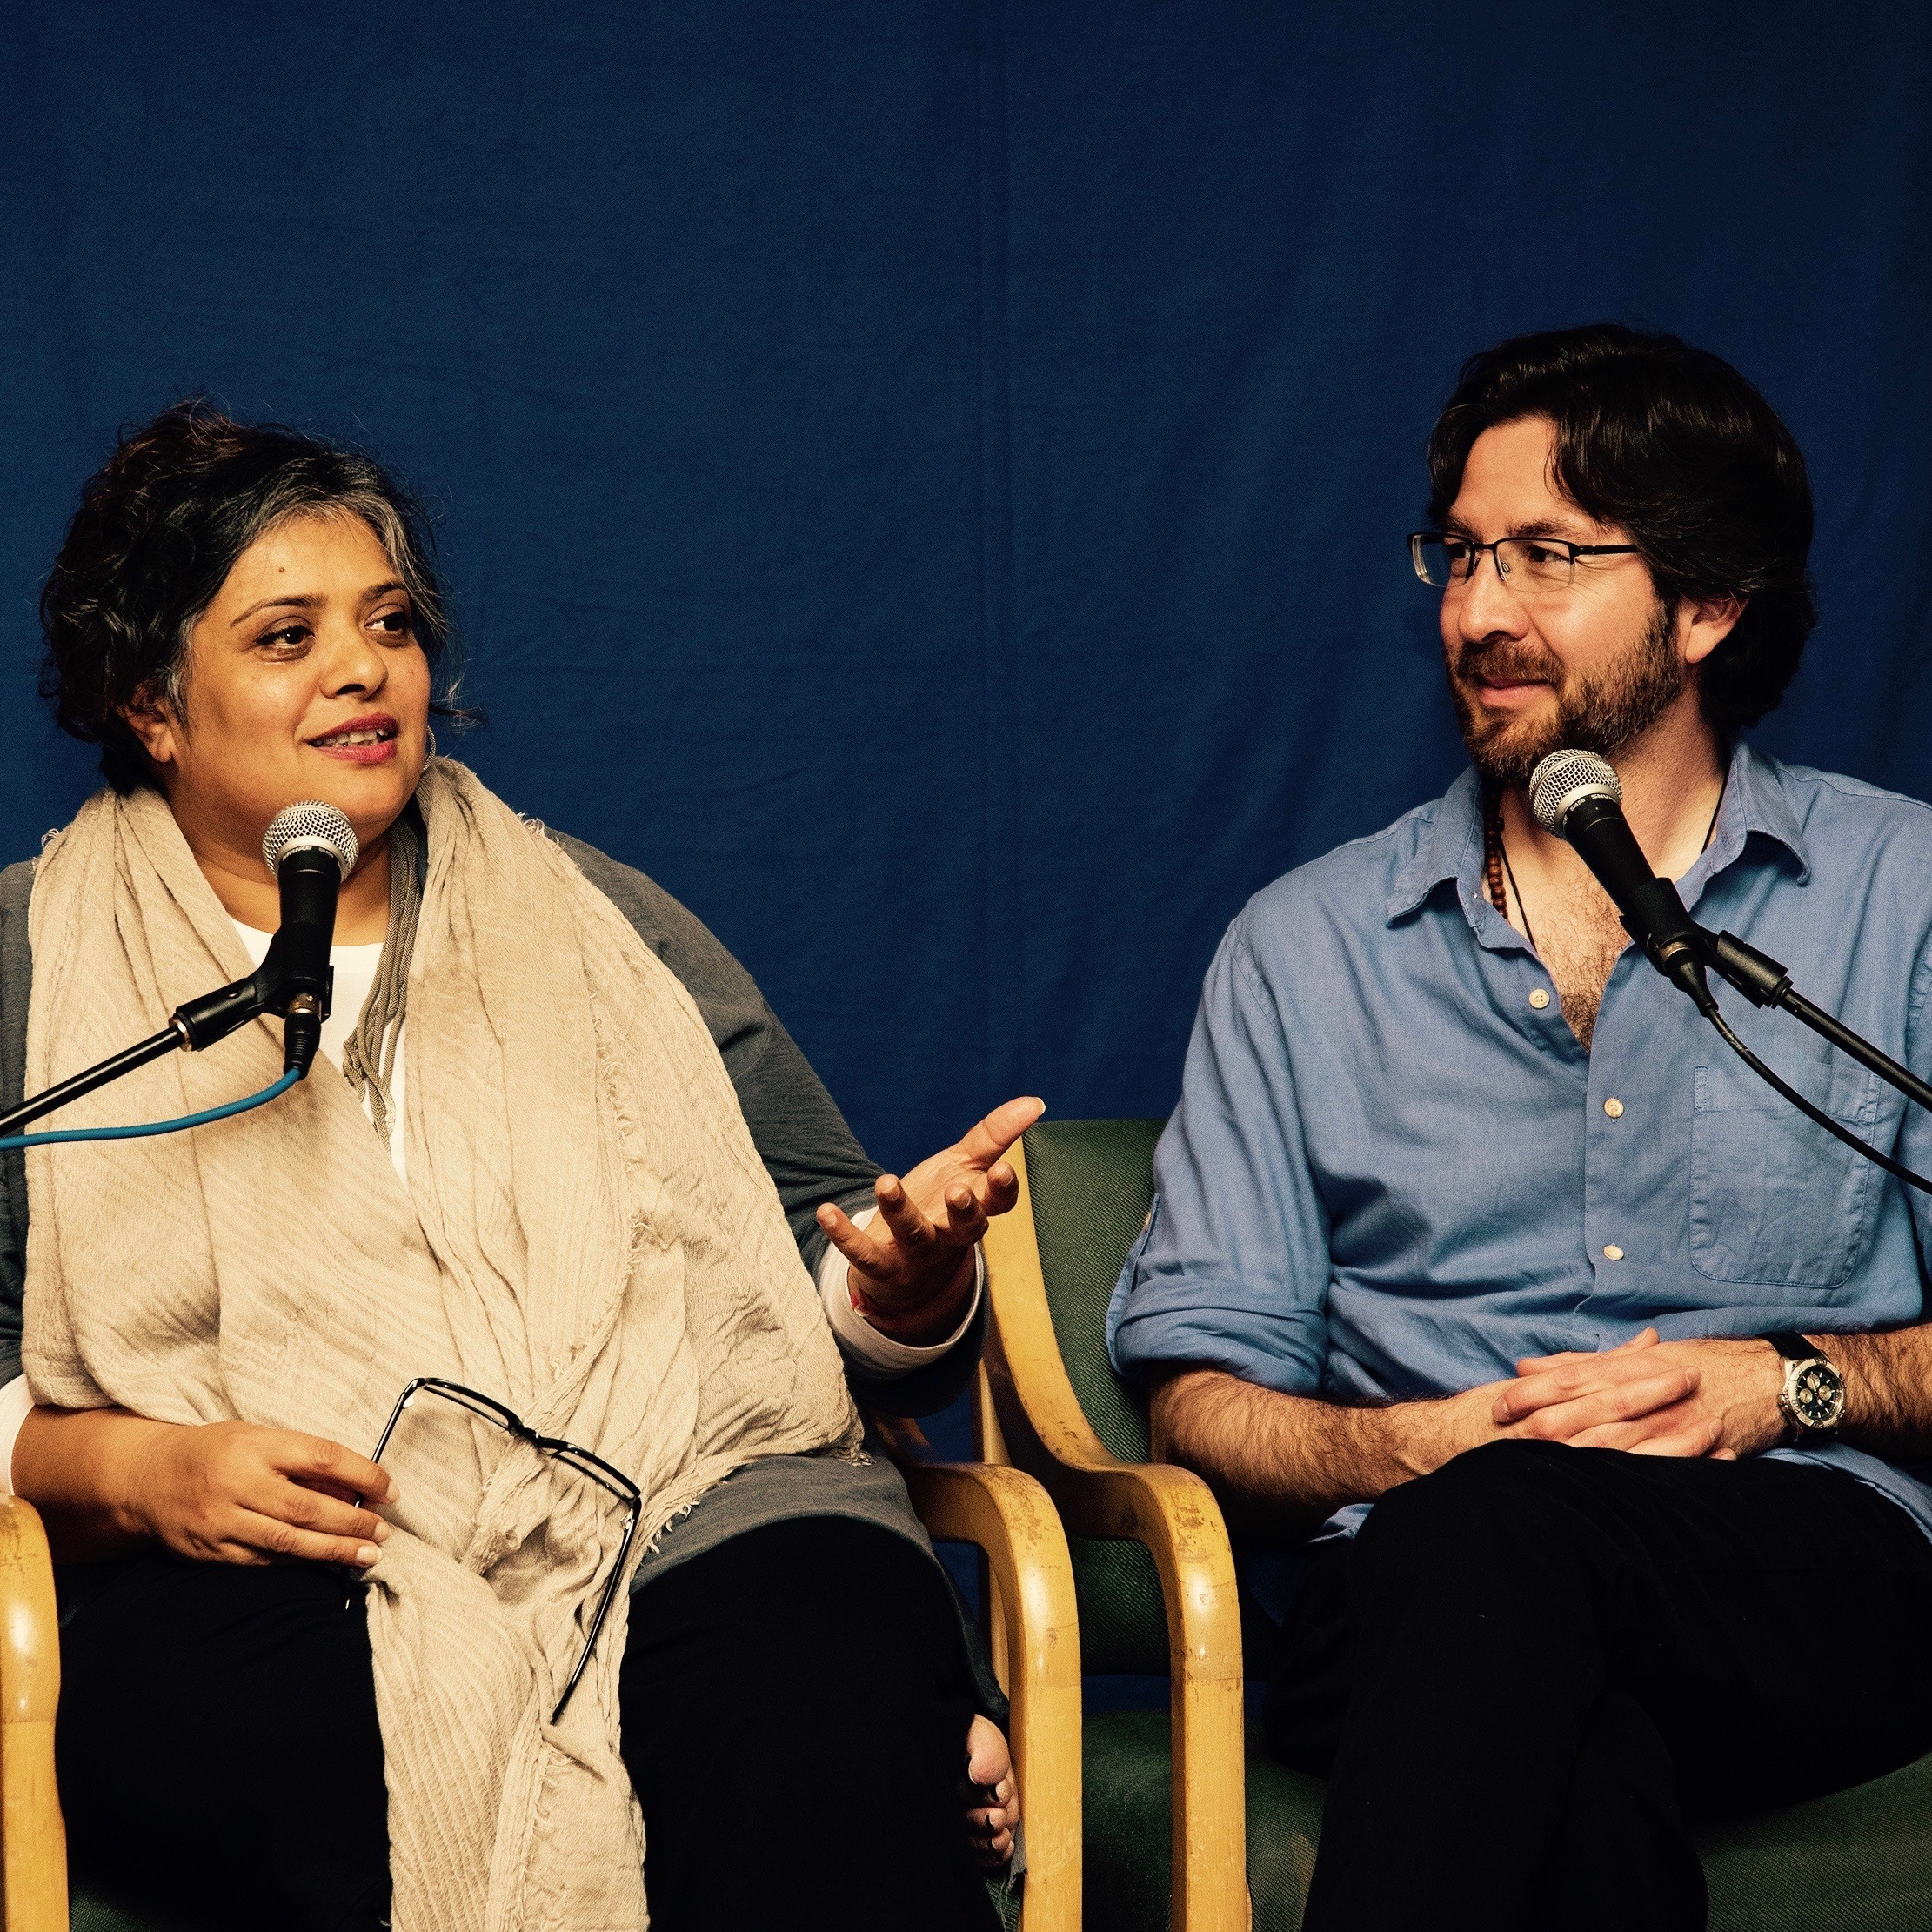 Deepa Gulrukh Patel and Netanel Miles-Yépez in dialogue. Photo by Hilary Benas, 2015.